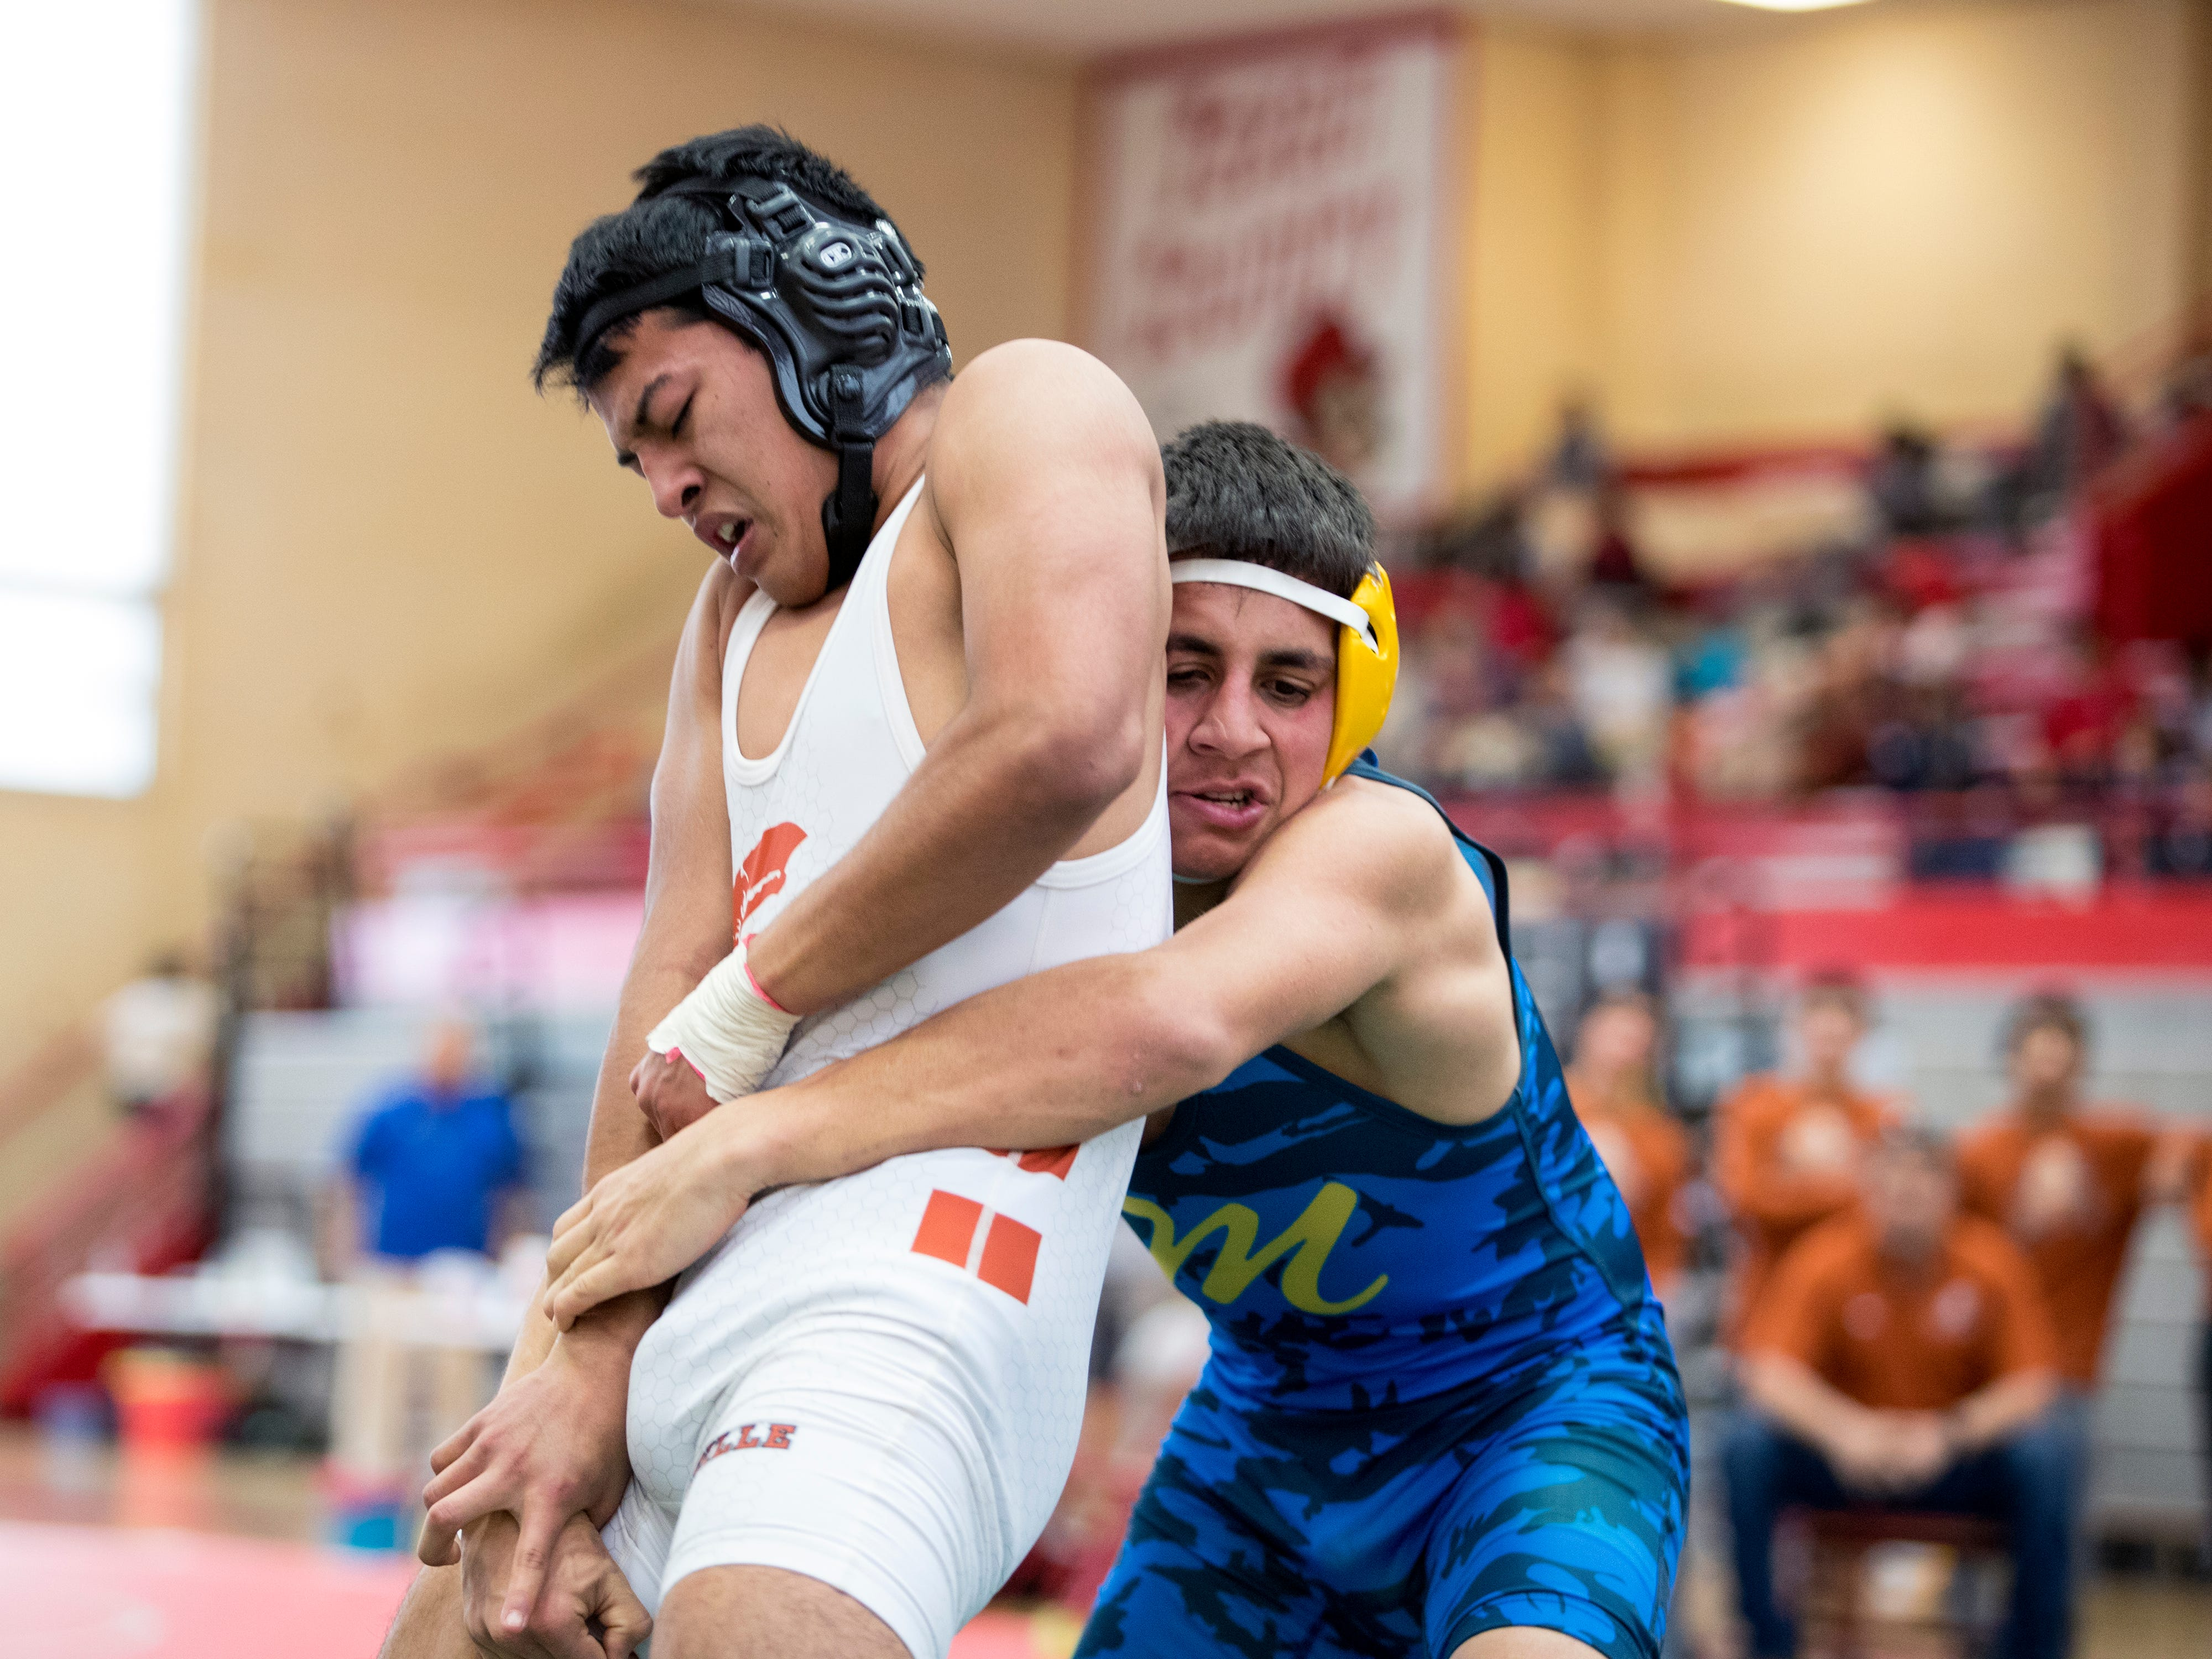 Beeville's Matthew Cardona (left) and Moody's Johnathan Shelton compete in the boys 138 weight class of the District 15-5A wrestling tournament at Ray High School on Thursday, February 7, 2019.